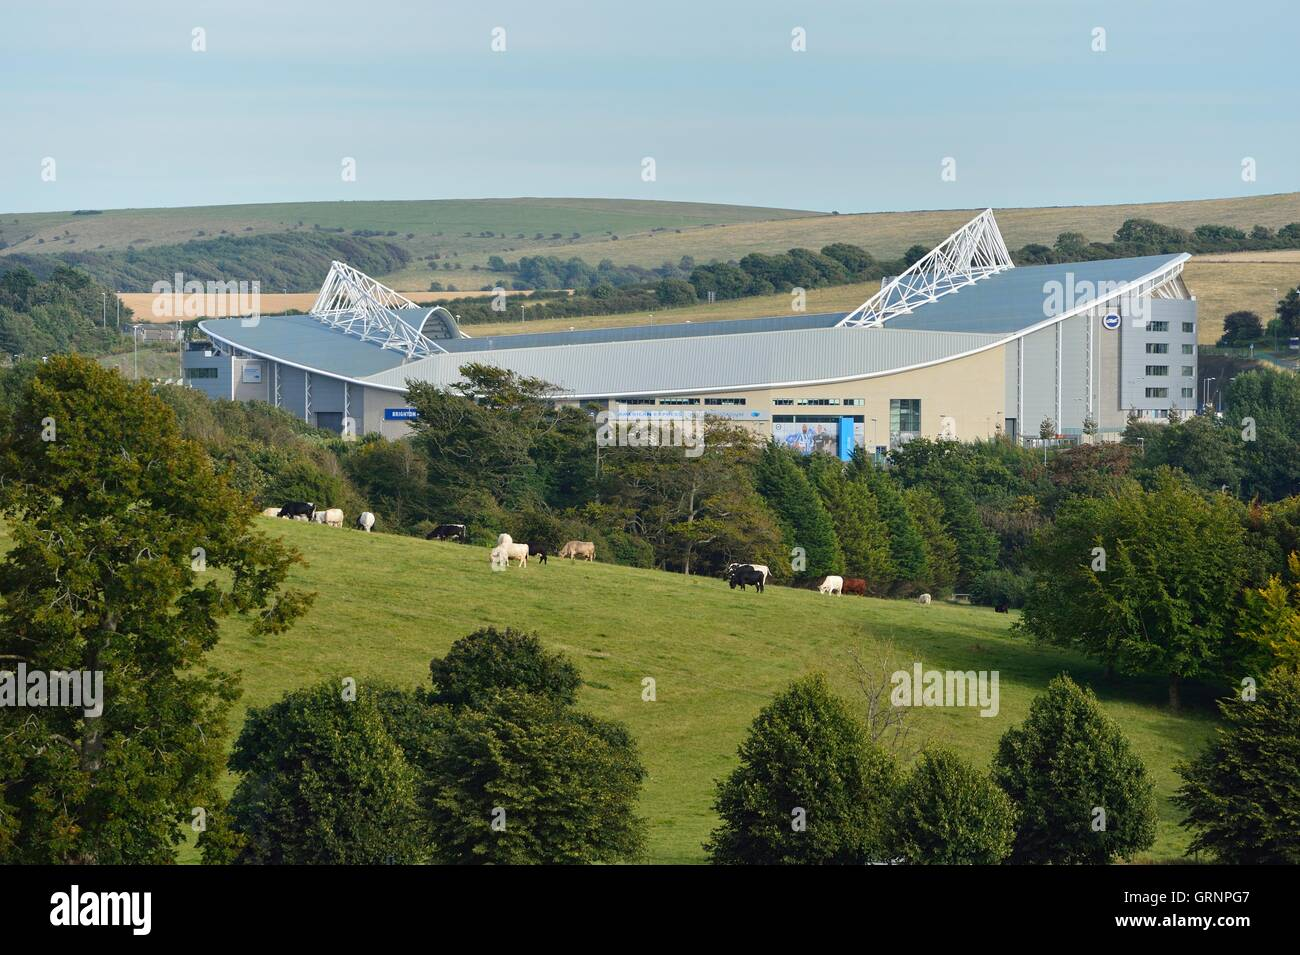 The Brighton football stadium American express, amex is framed by a more rural scene of cows grazing in a field - Stock Image